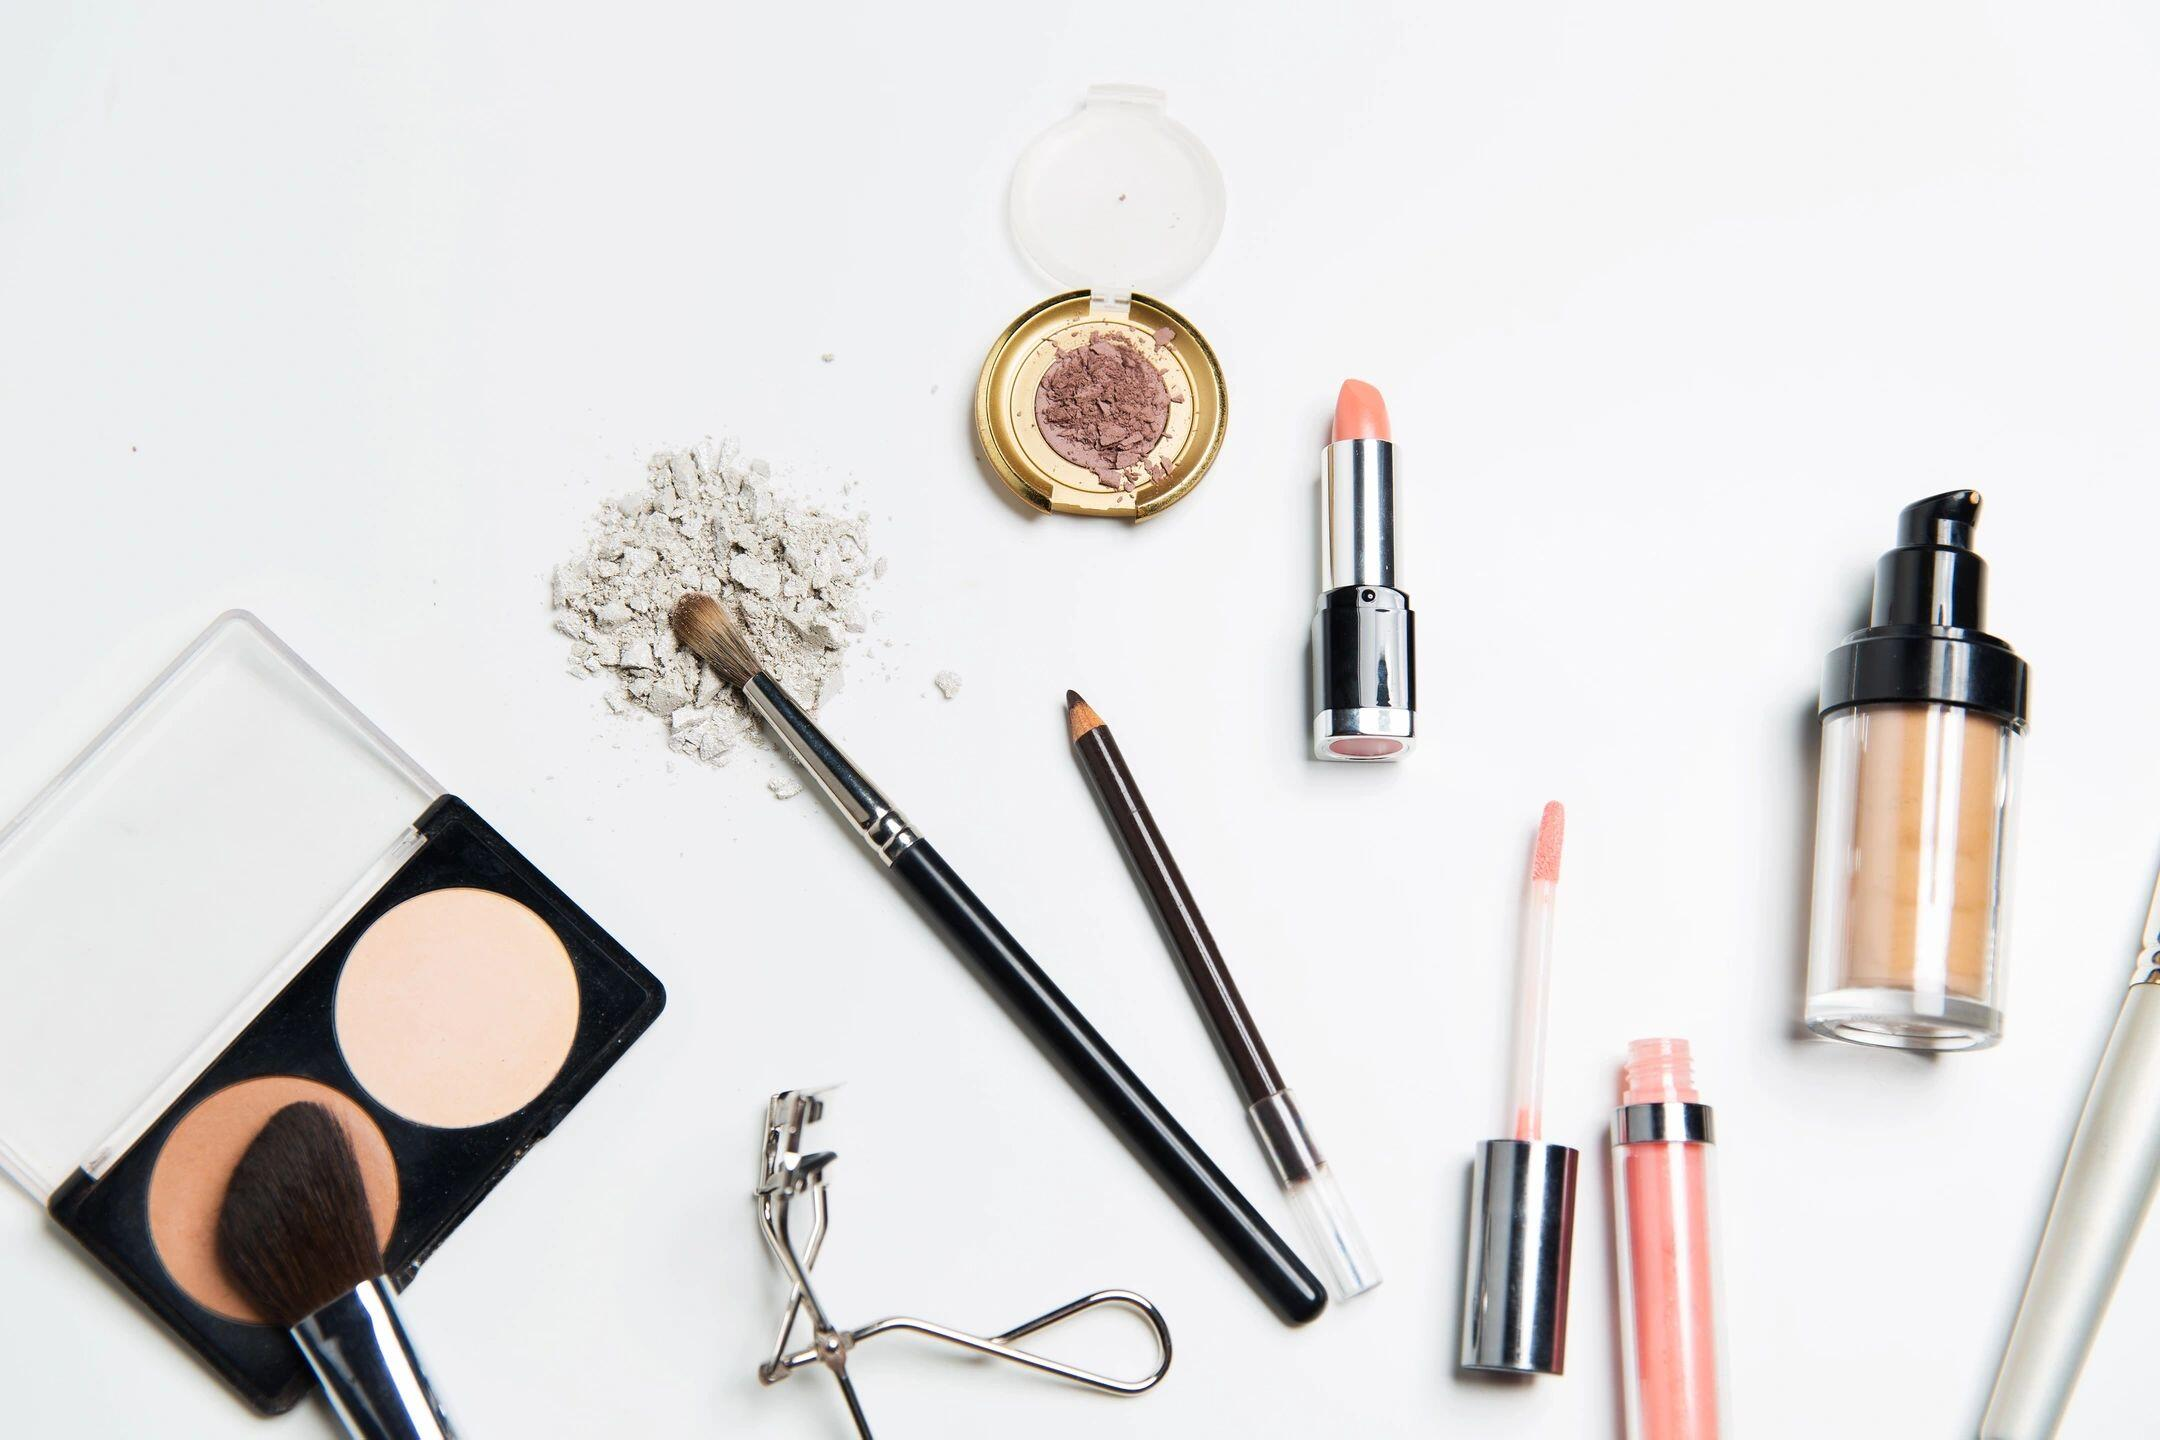 Decluttering Make Up: How Can I Declutter My Make-Up-for Safety?